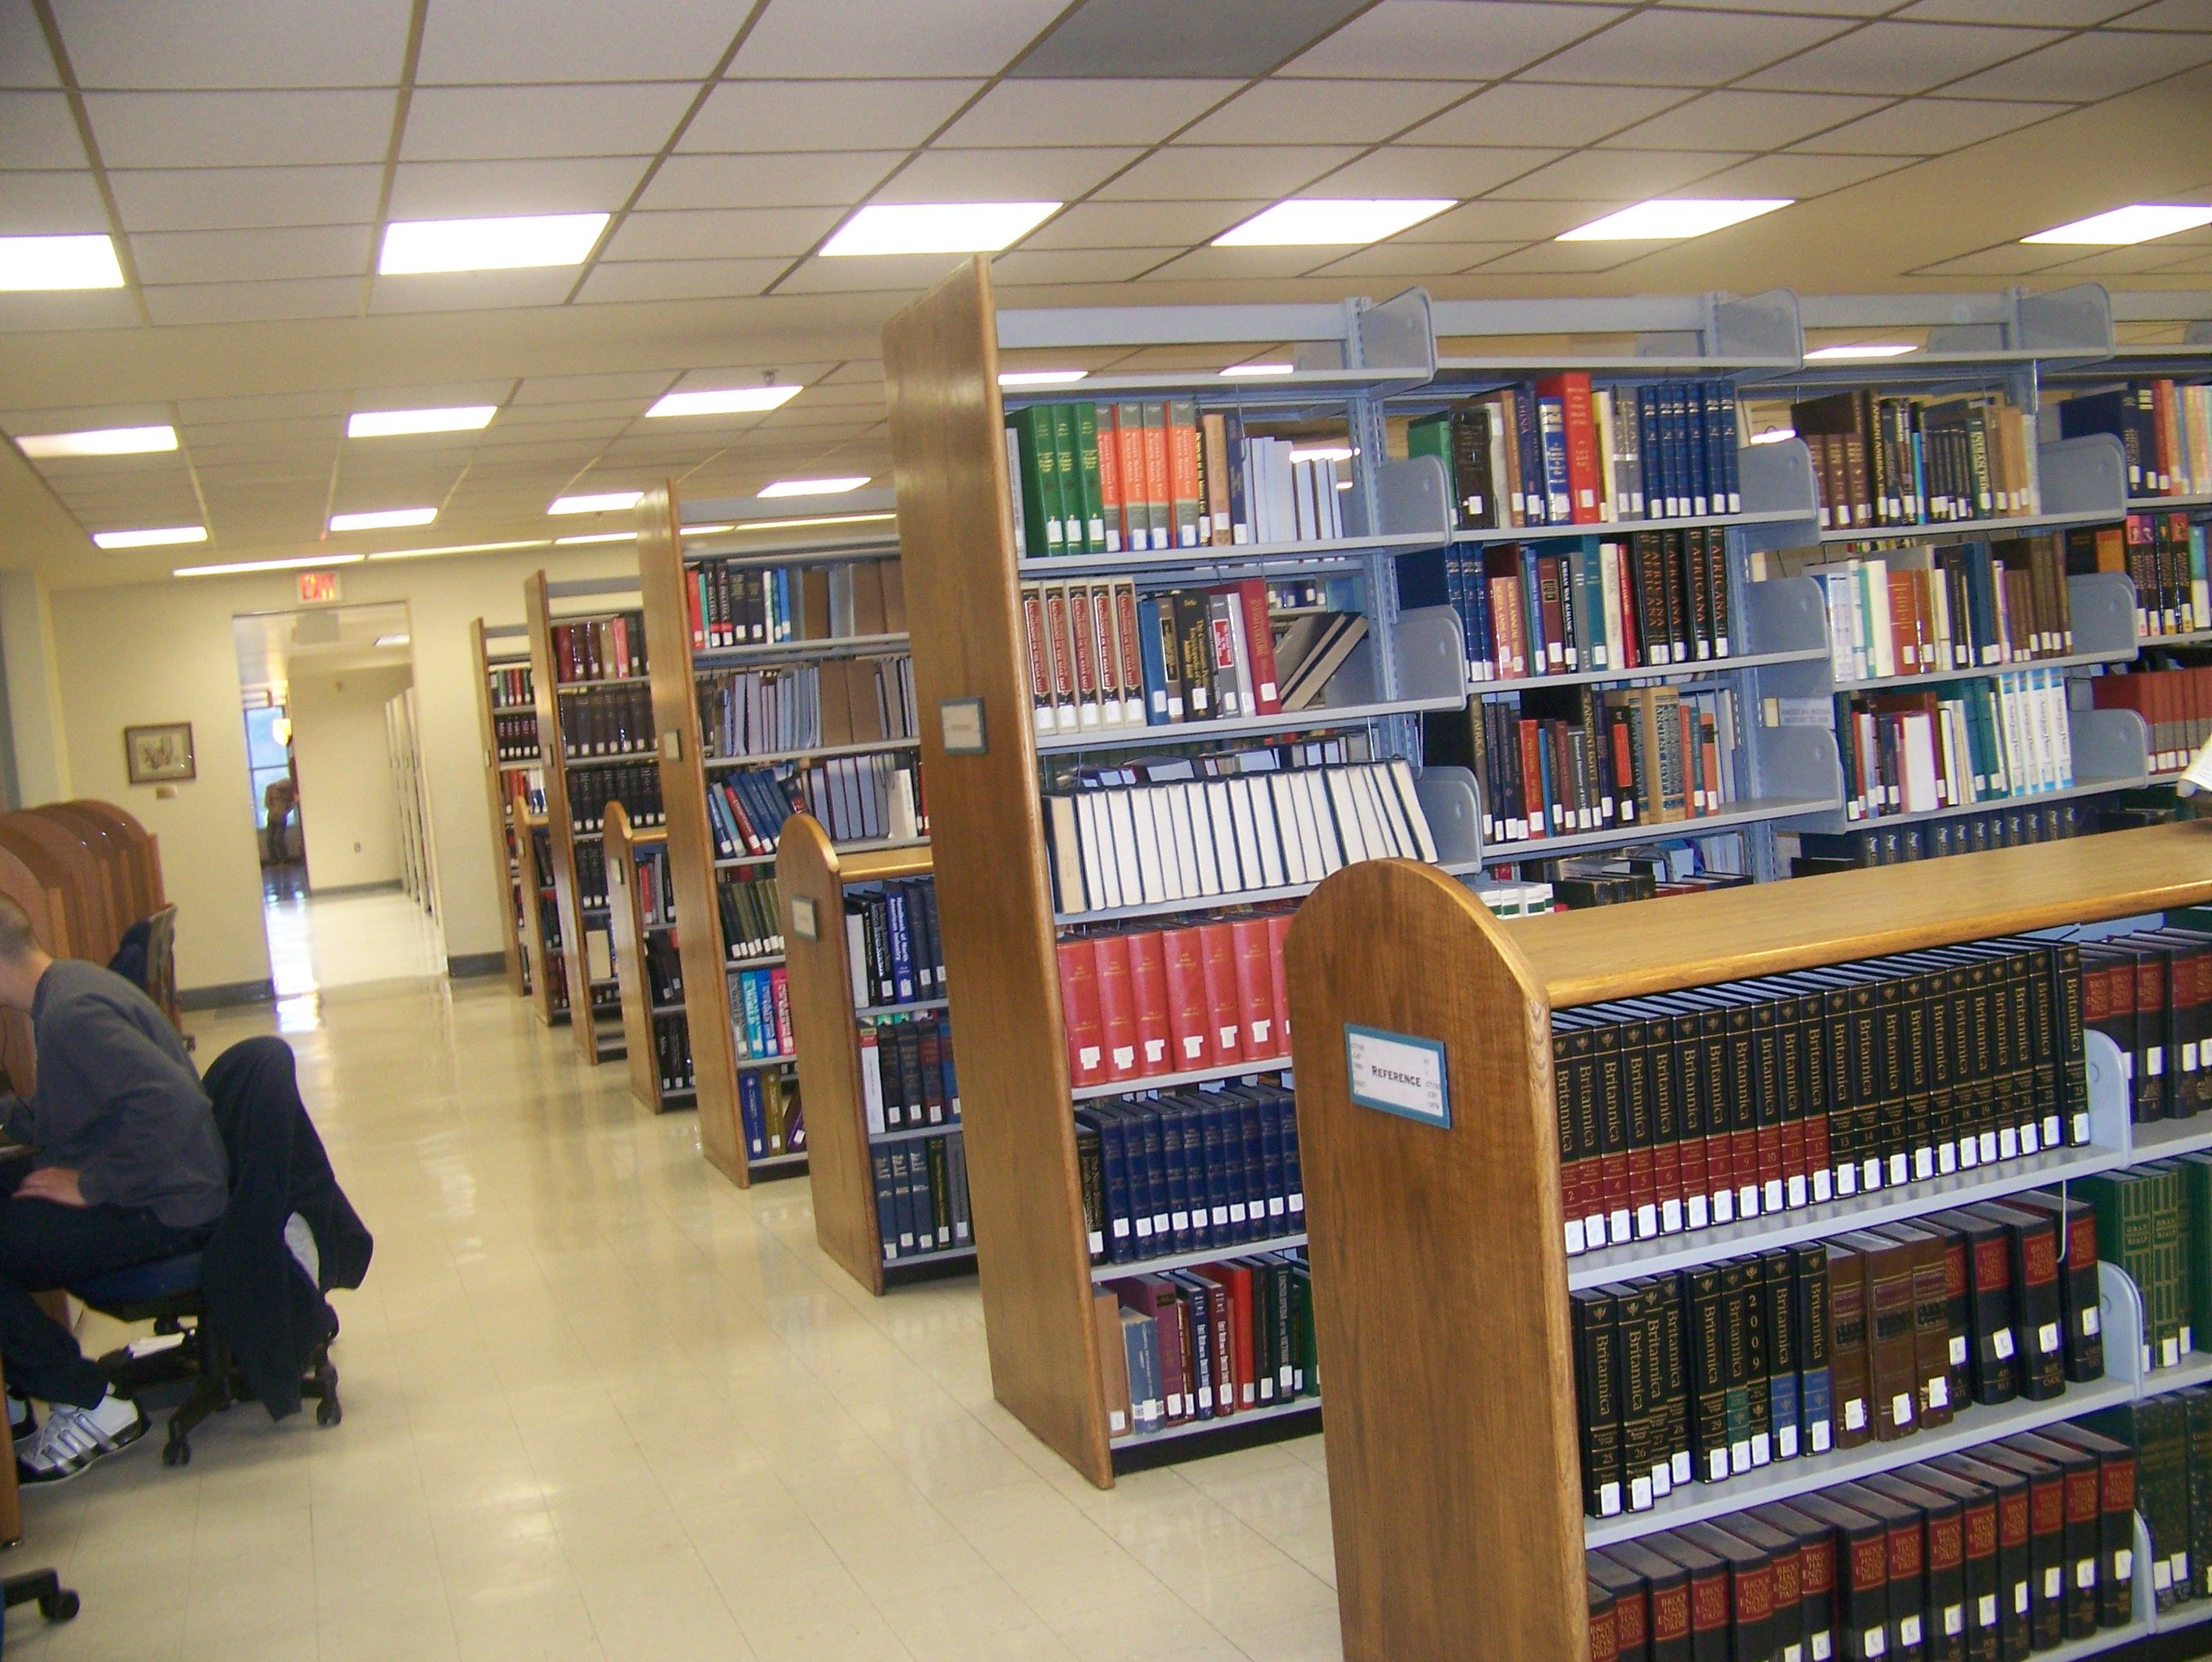 A look at the reference area with the tall and short shelves